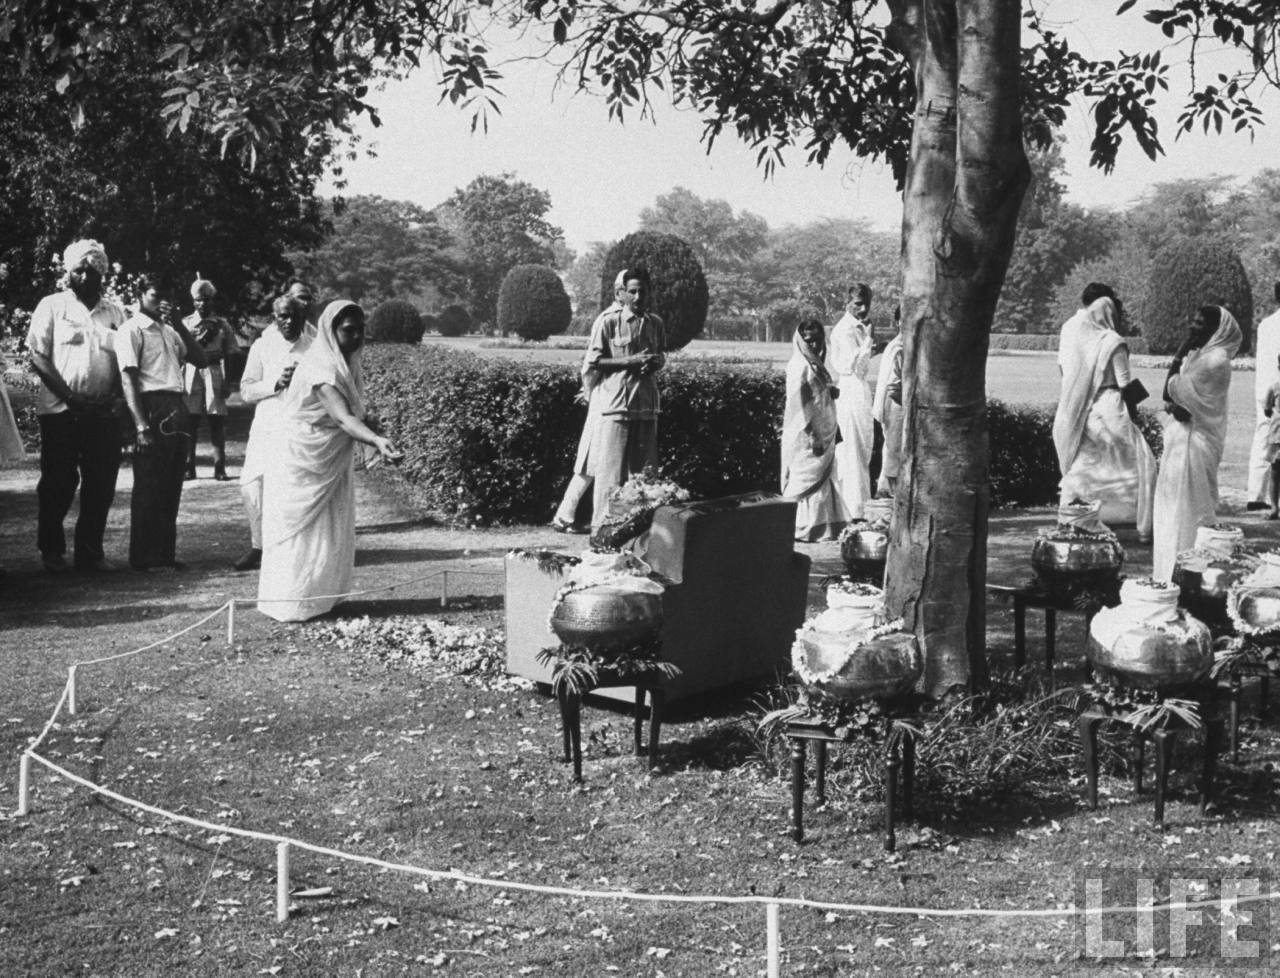 People paying homage to ashes of Jawaharlal Nehru placed in 8 brass urns - June 1964